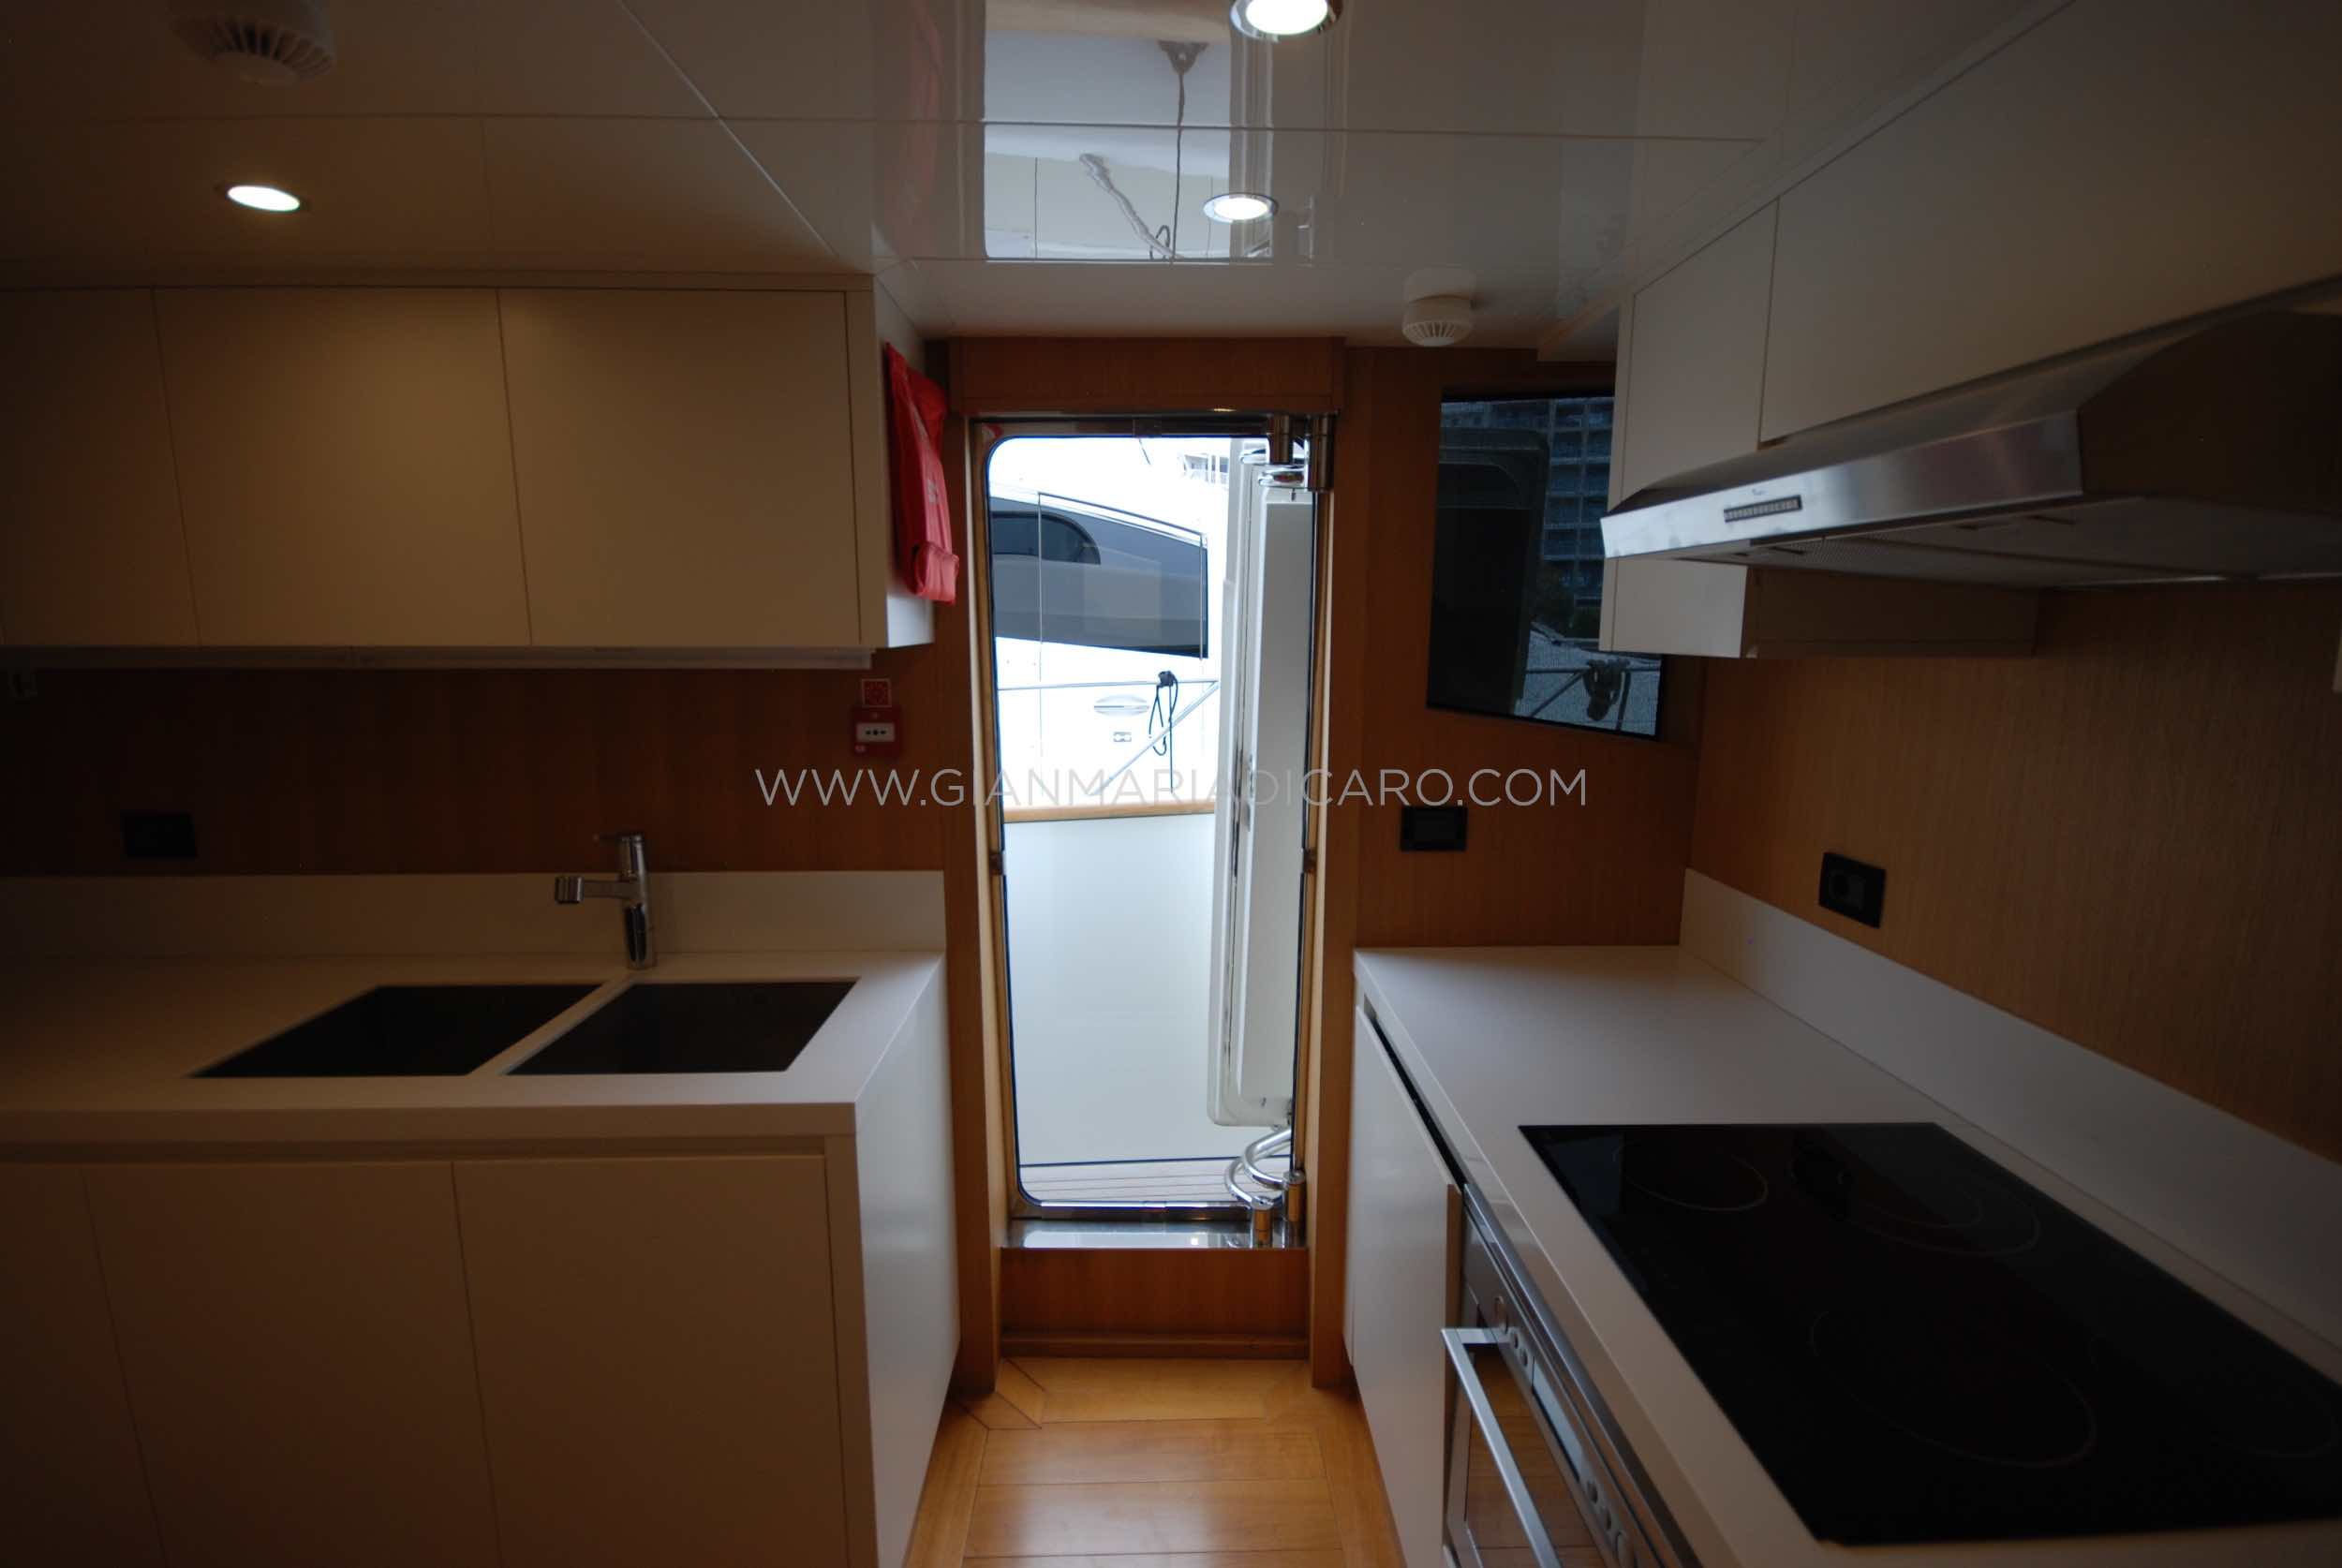 emys-yacht-22-unica-for-sale-136.jpg